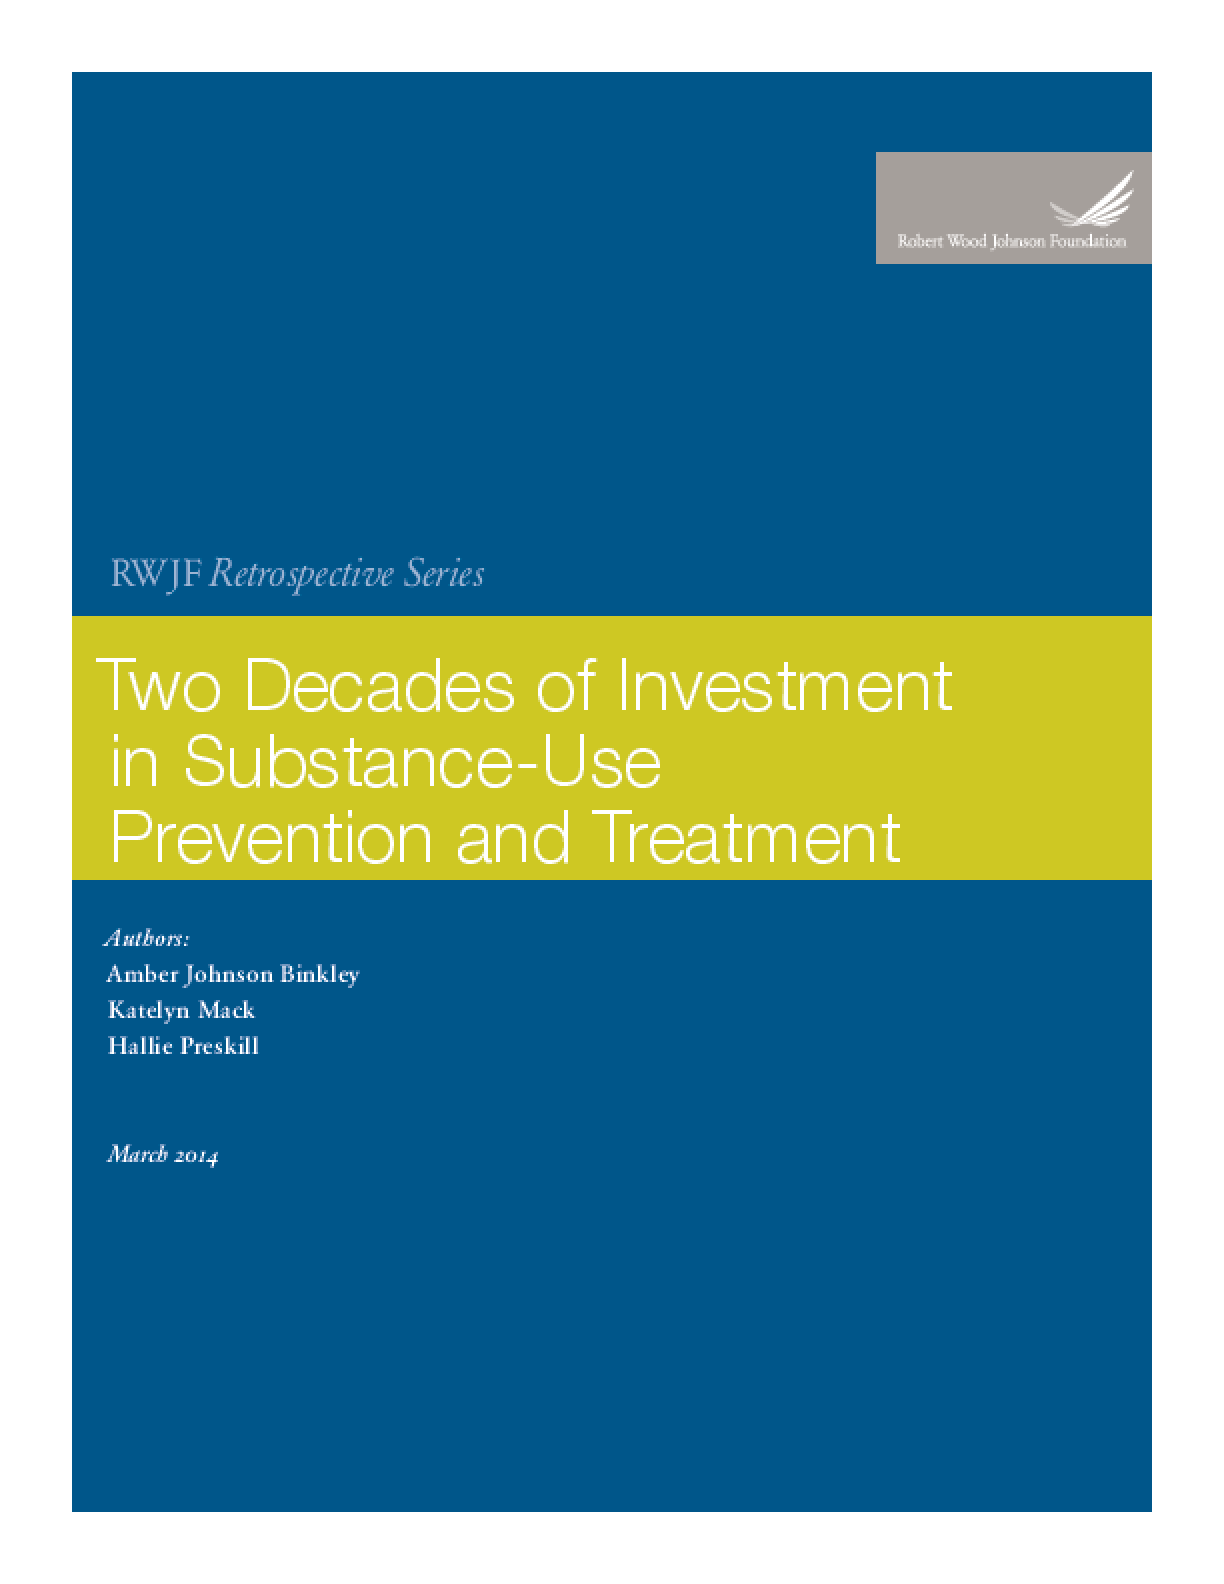 Two Decades of Investment in Substance-Use Prevention and Treatment